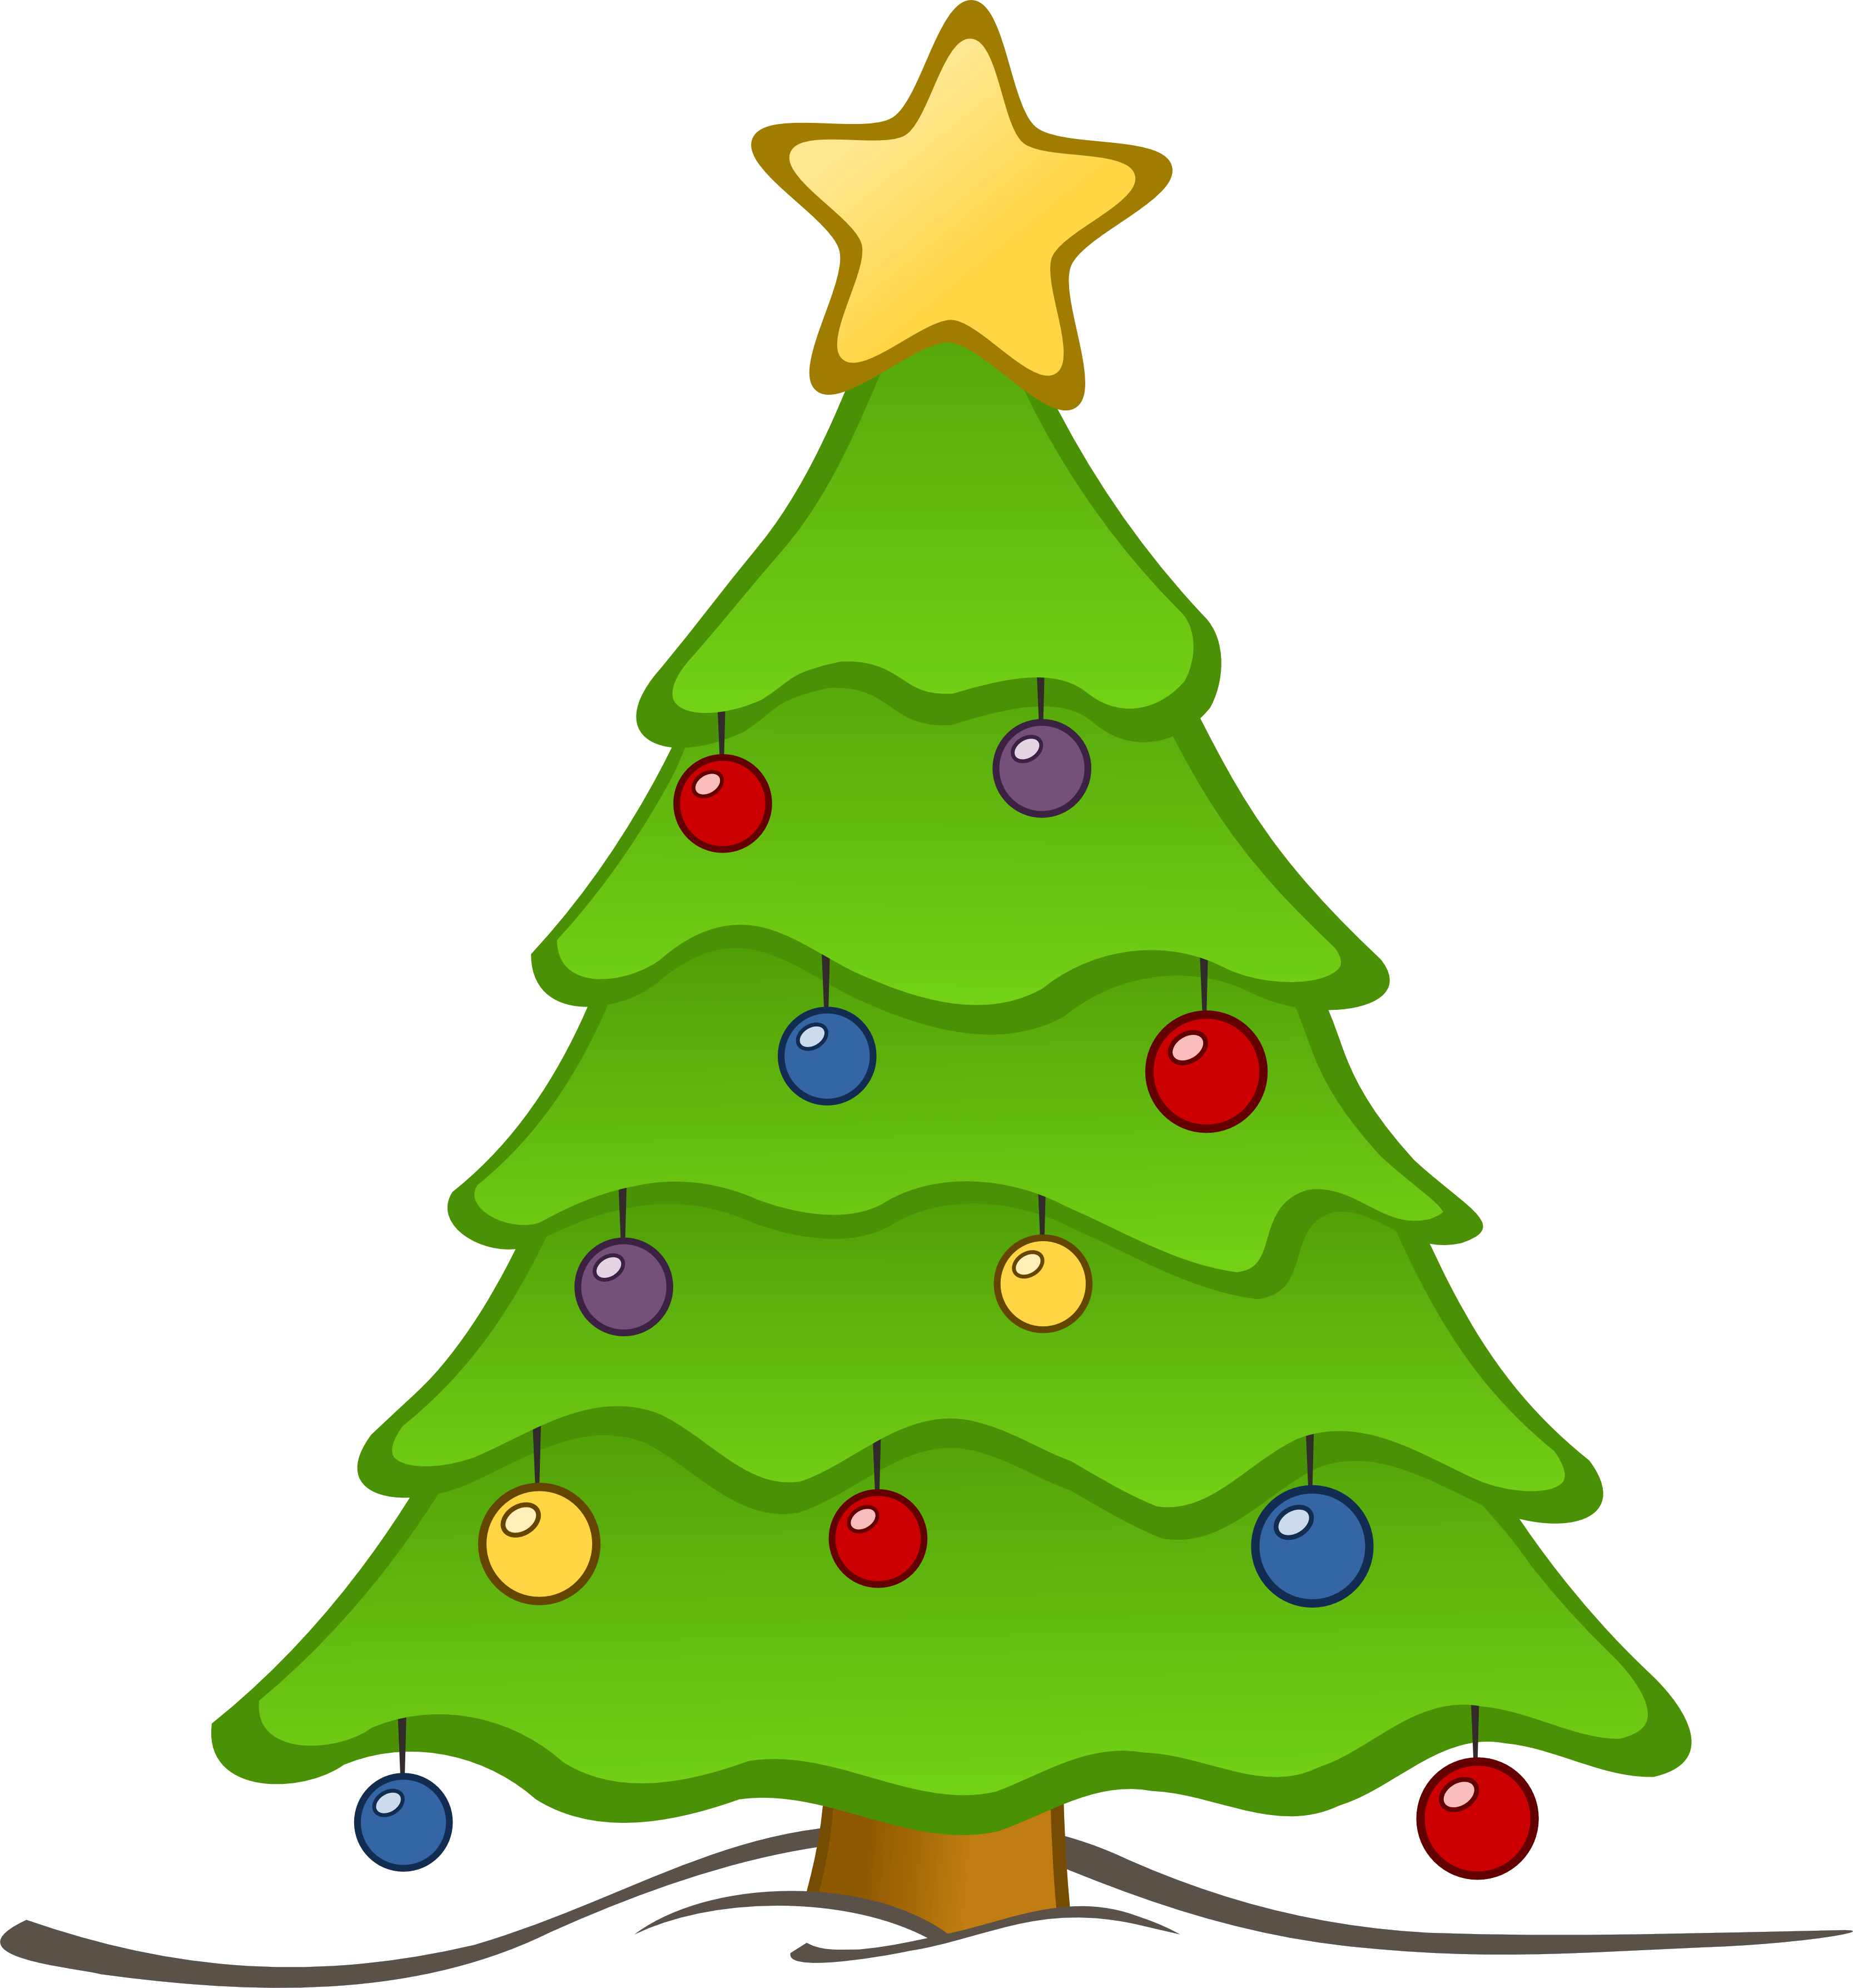 Fire clipart christmas tree. Free on dumielauxepices net